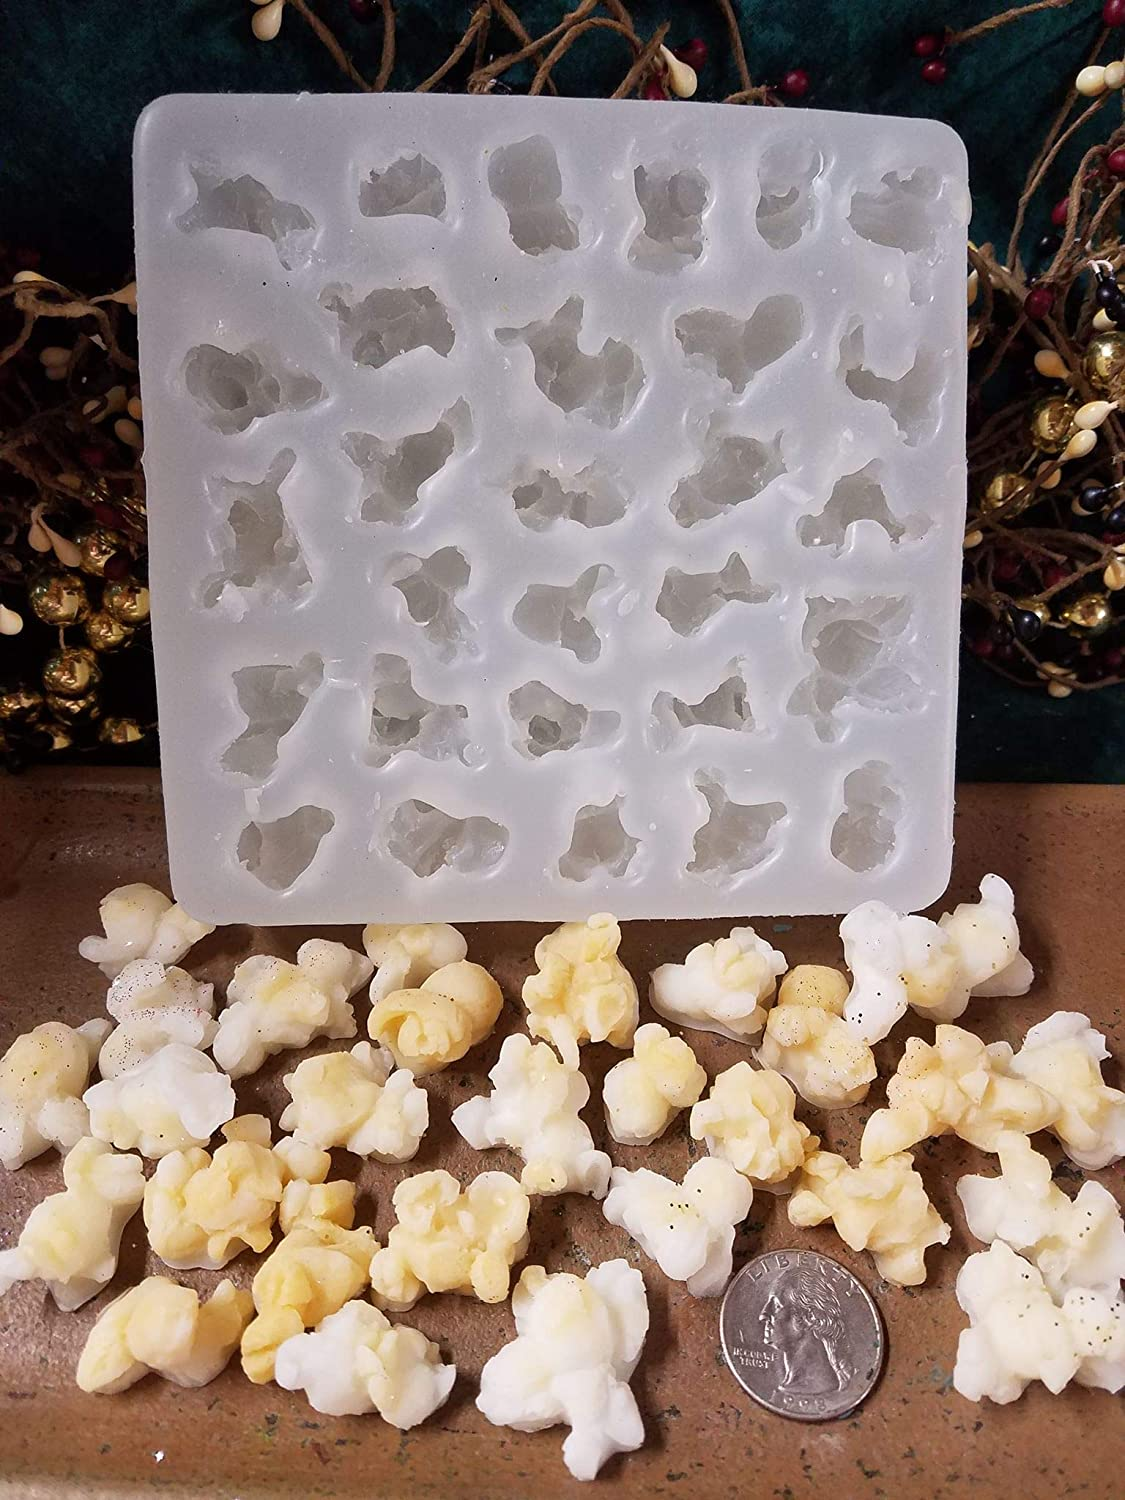 Popcorn Embeds 29 Cavity Silicone Mold 5064 Food-Soap-Candle-Resin-Flexible Van Yulay